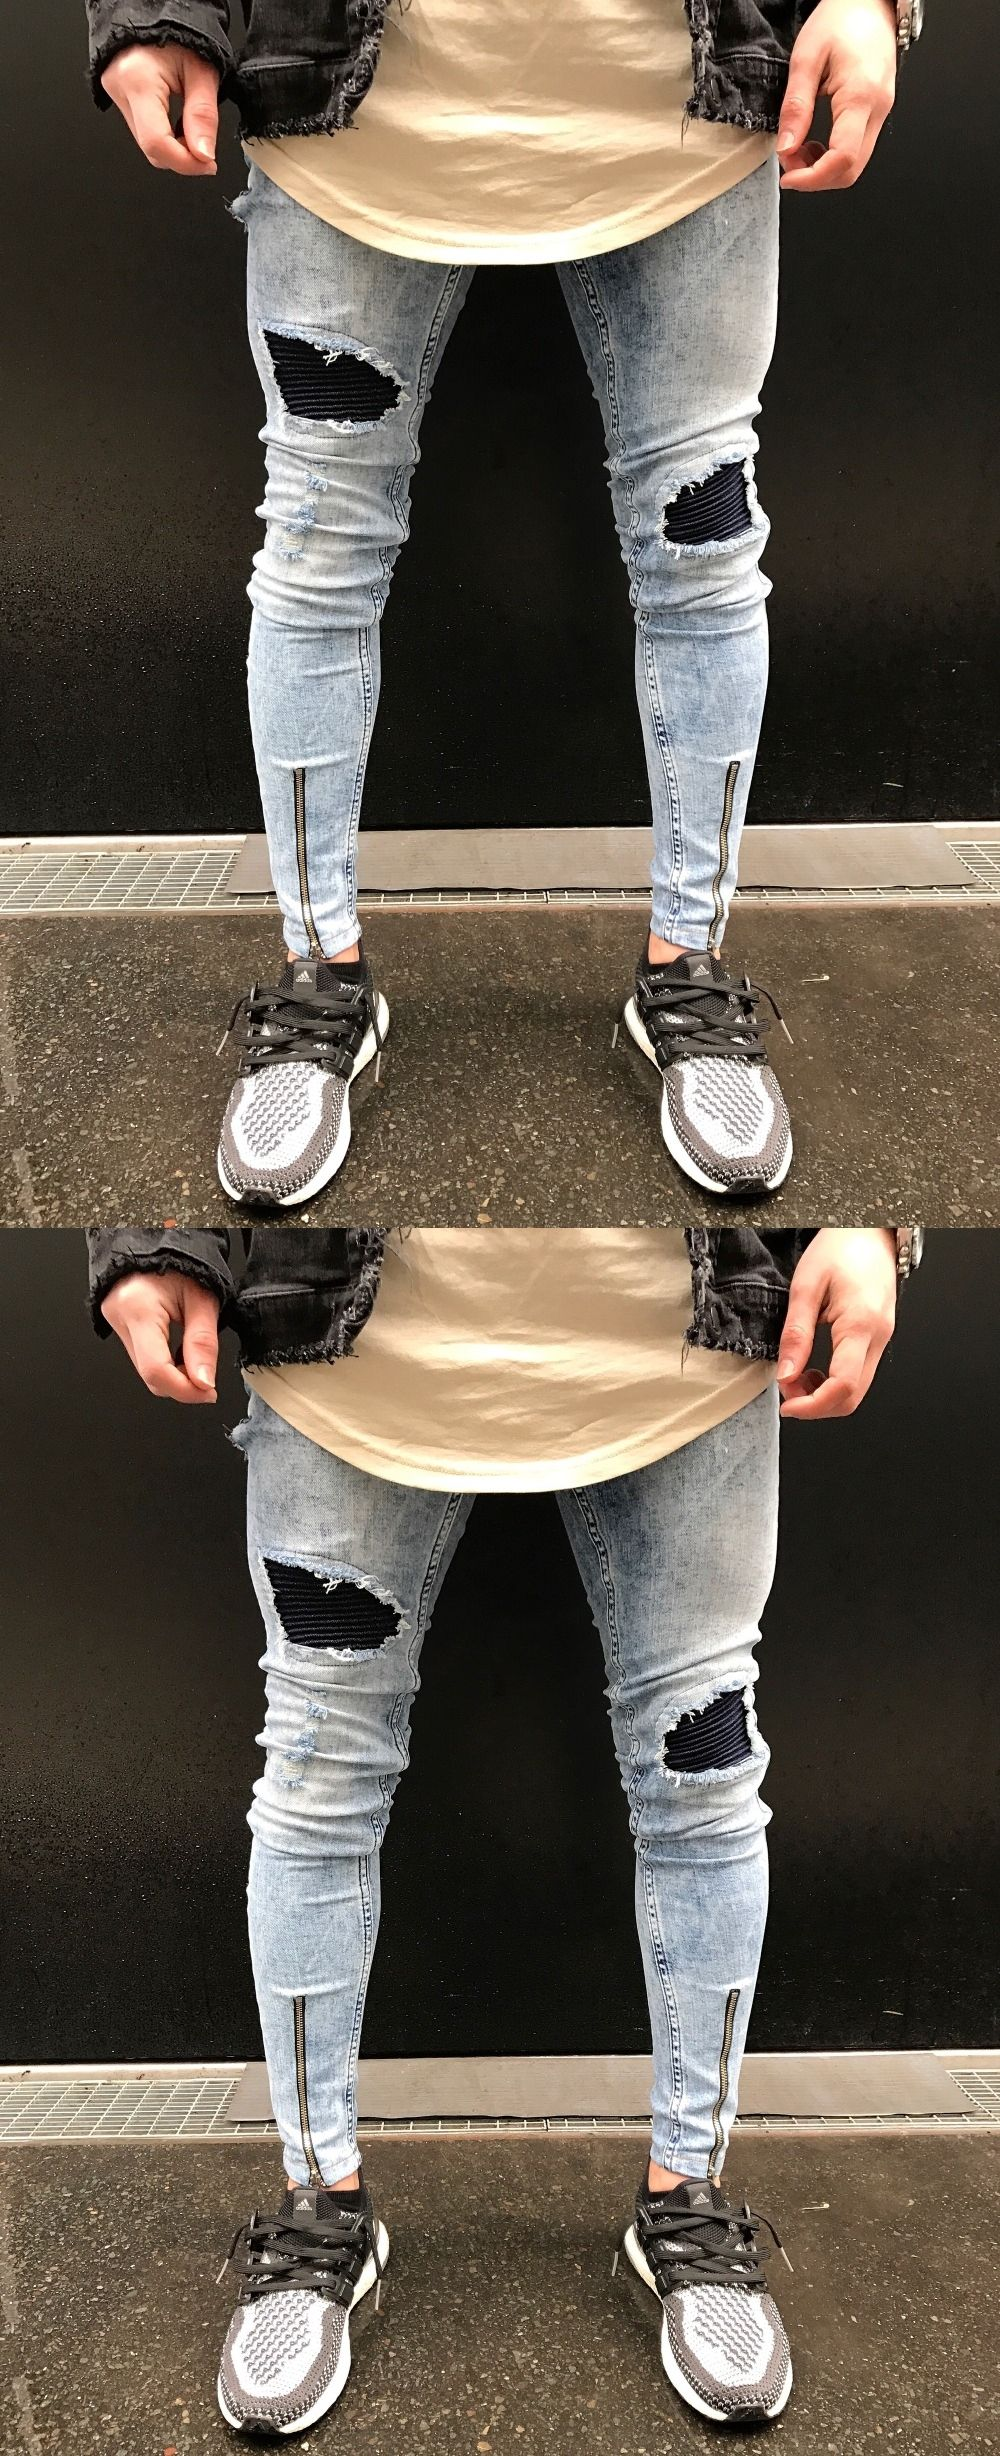 4eaf607597597 2018 New Dropshipping Men Jeans Stretch Destroyed Ripped Design Hip Hop  Holes Fashion Ankle Zipper Skinny